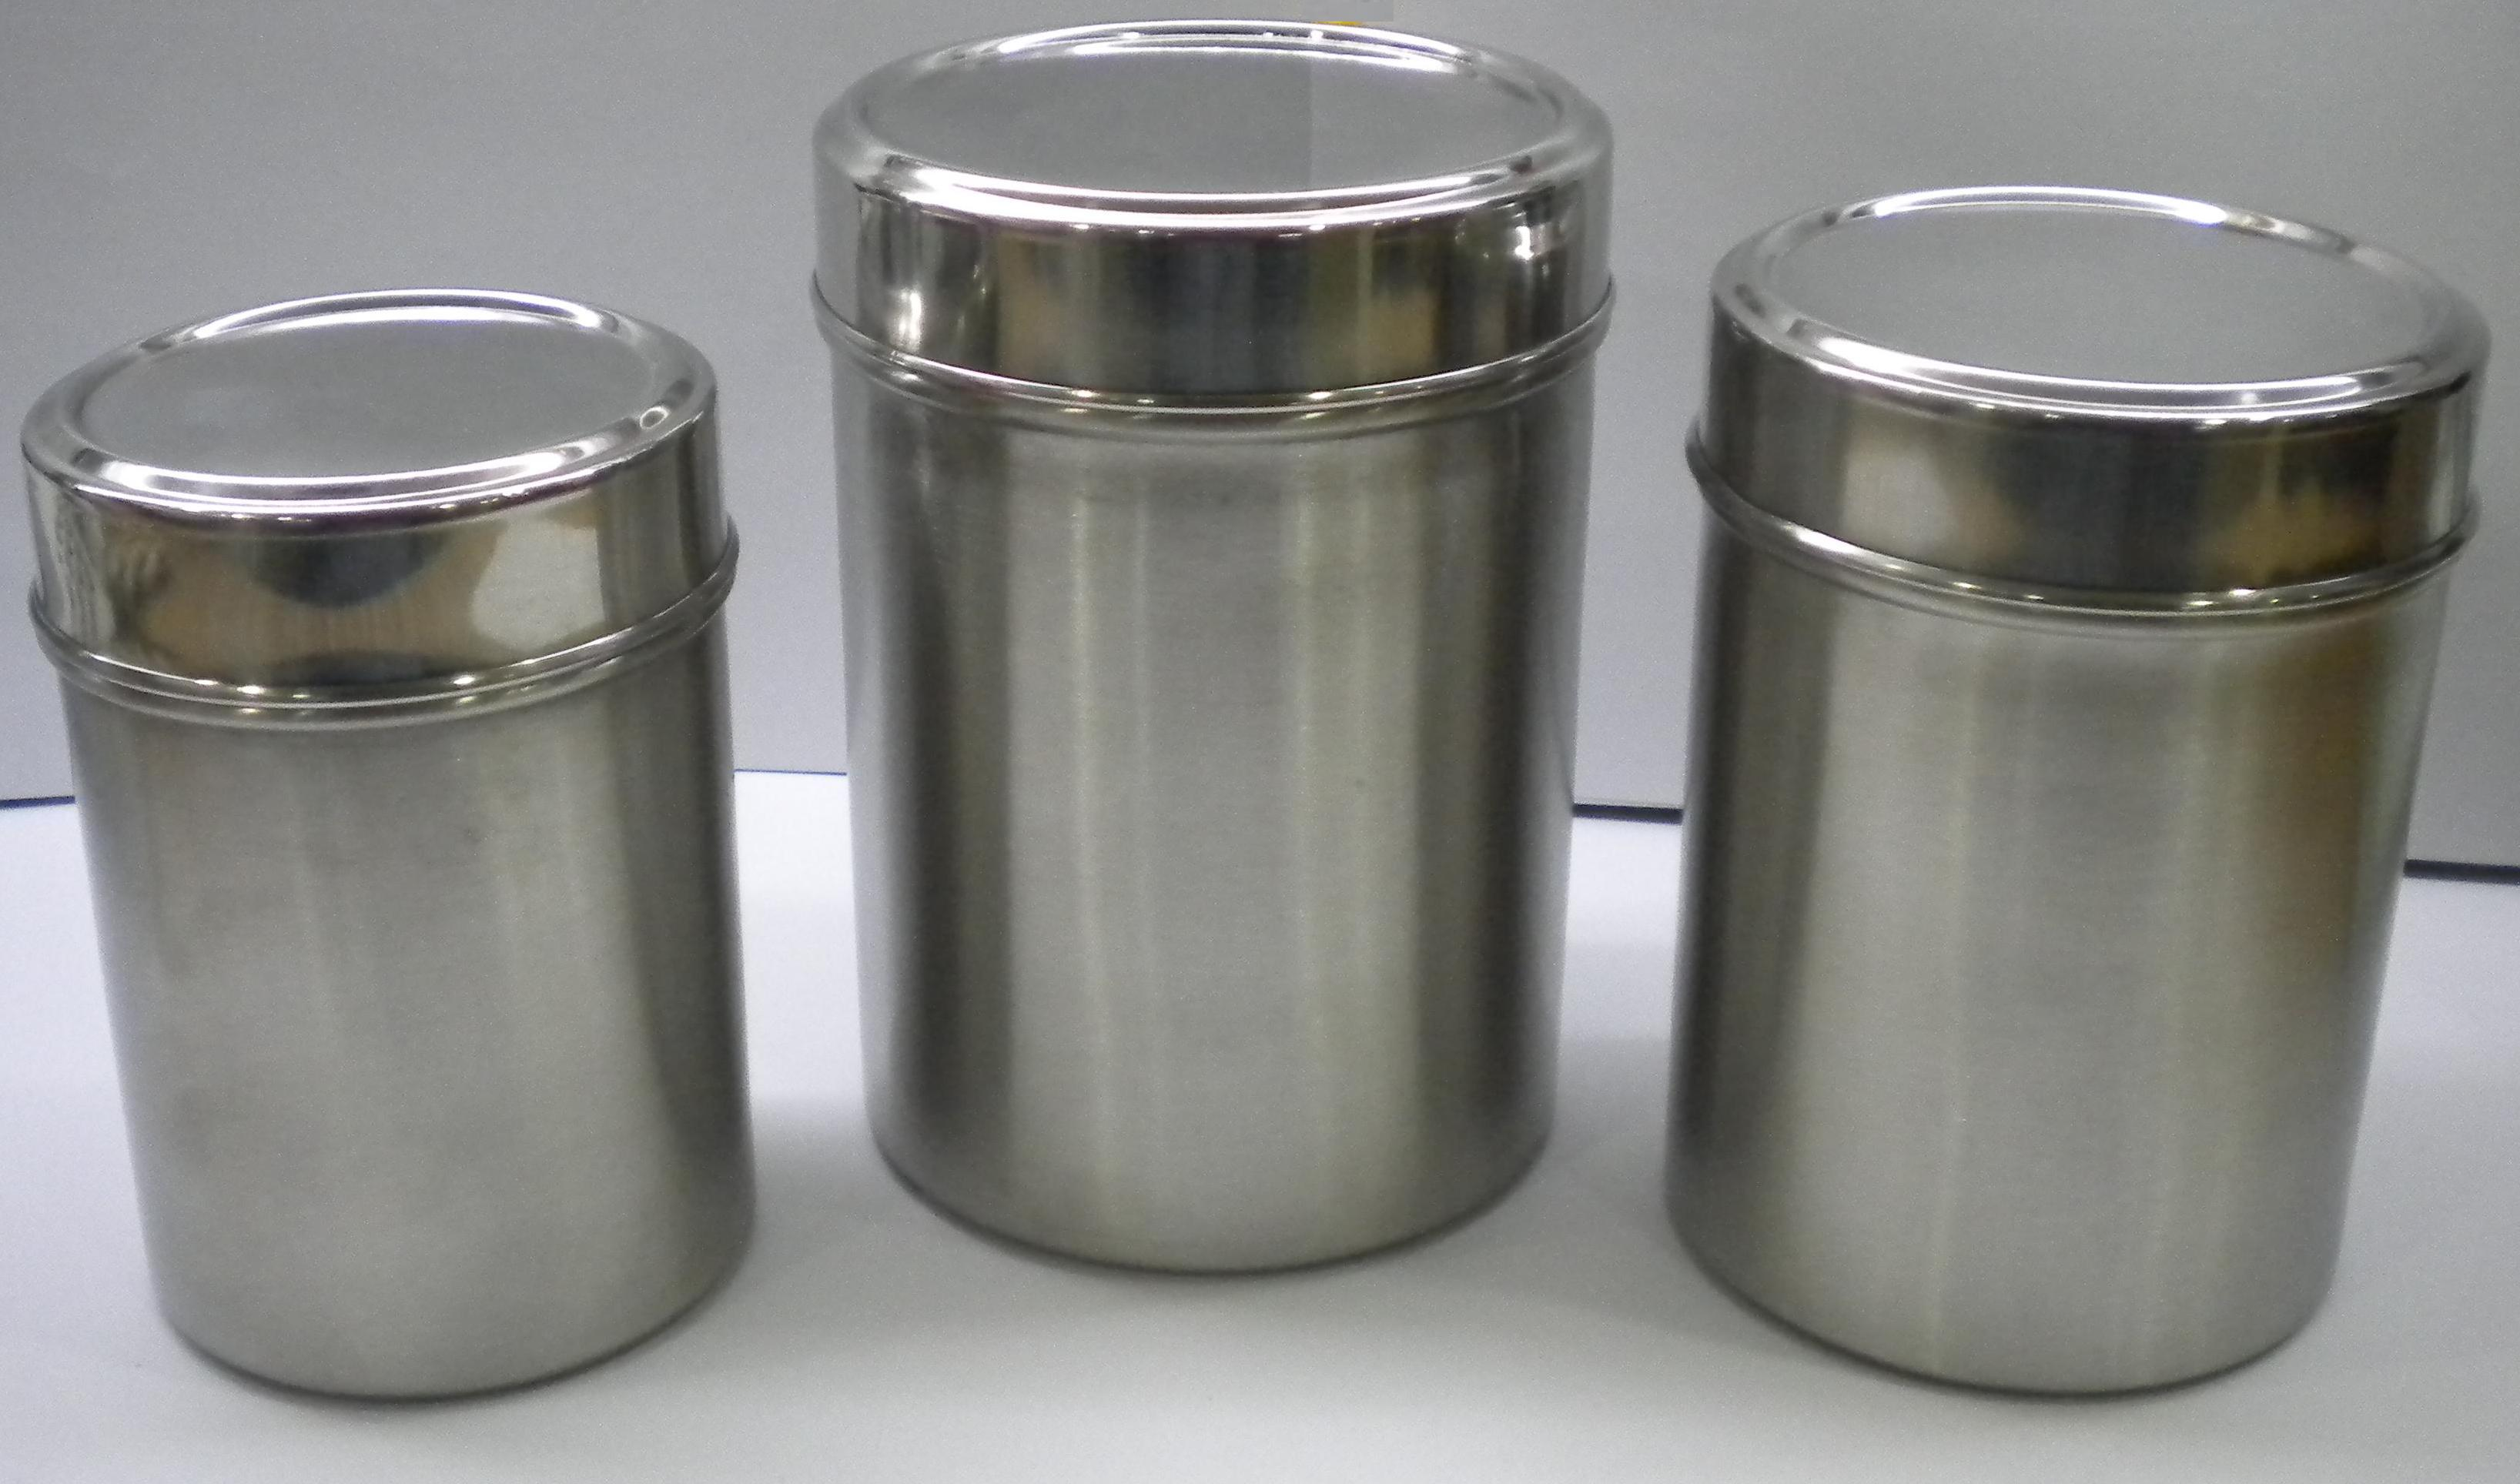 Large Kitchen Canisters Online Shopping Store Buy Online Mobiles Phone